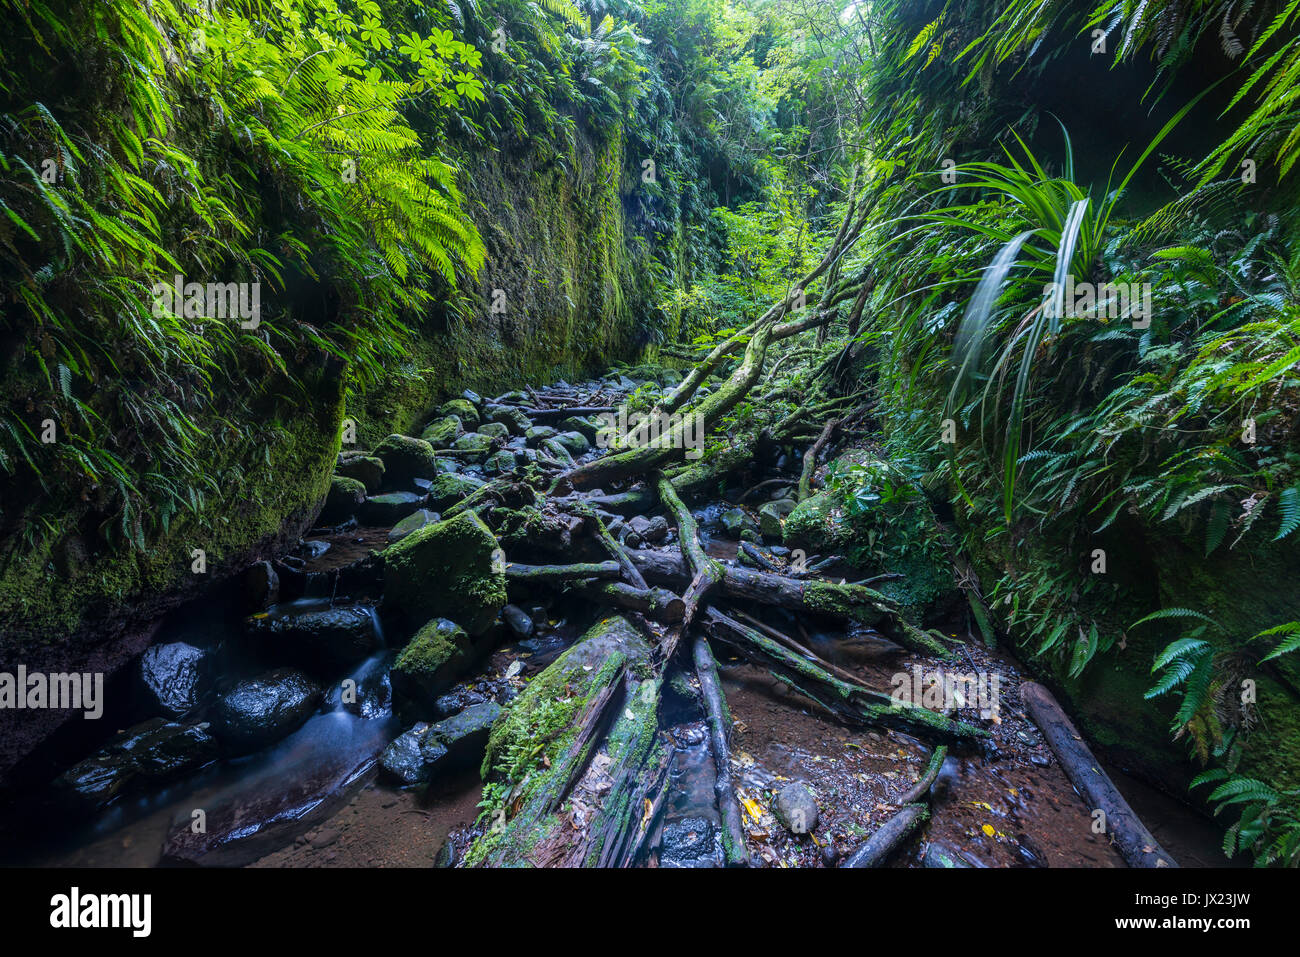 Gorge overgrown with ferns and moss, Nichols Stream, Leith Valley, Dunedin, Otago, New Zealand - Stock Image